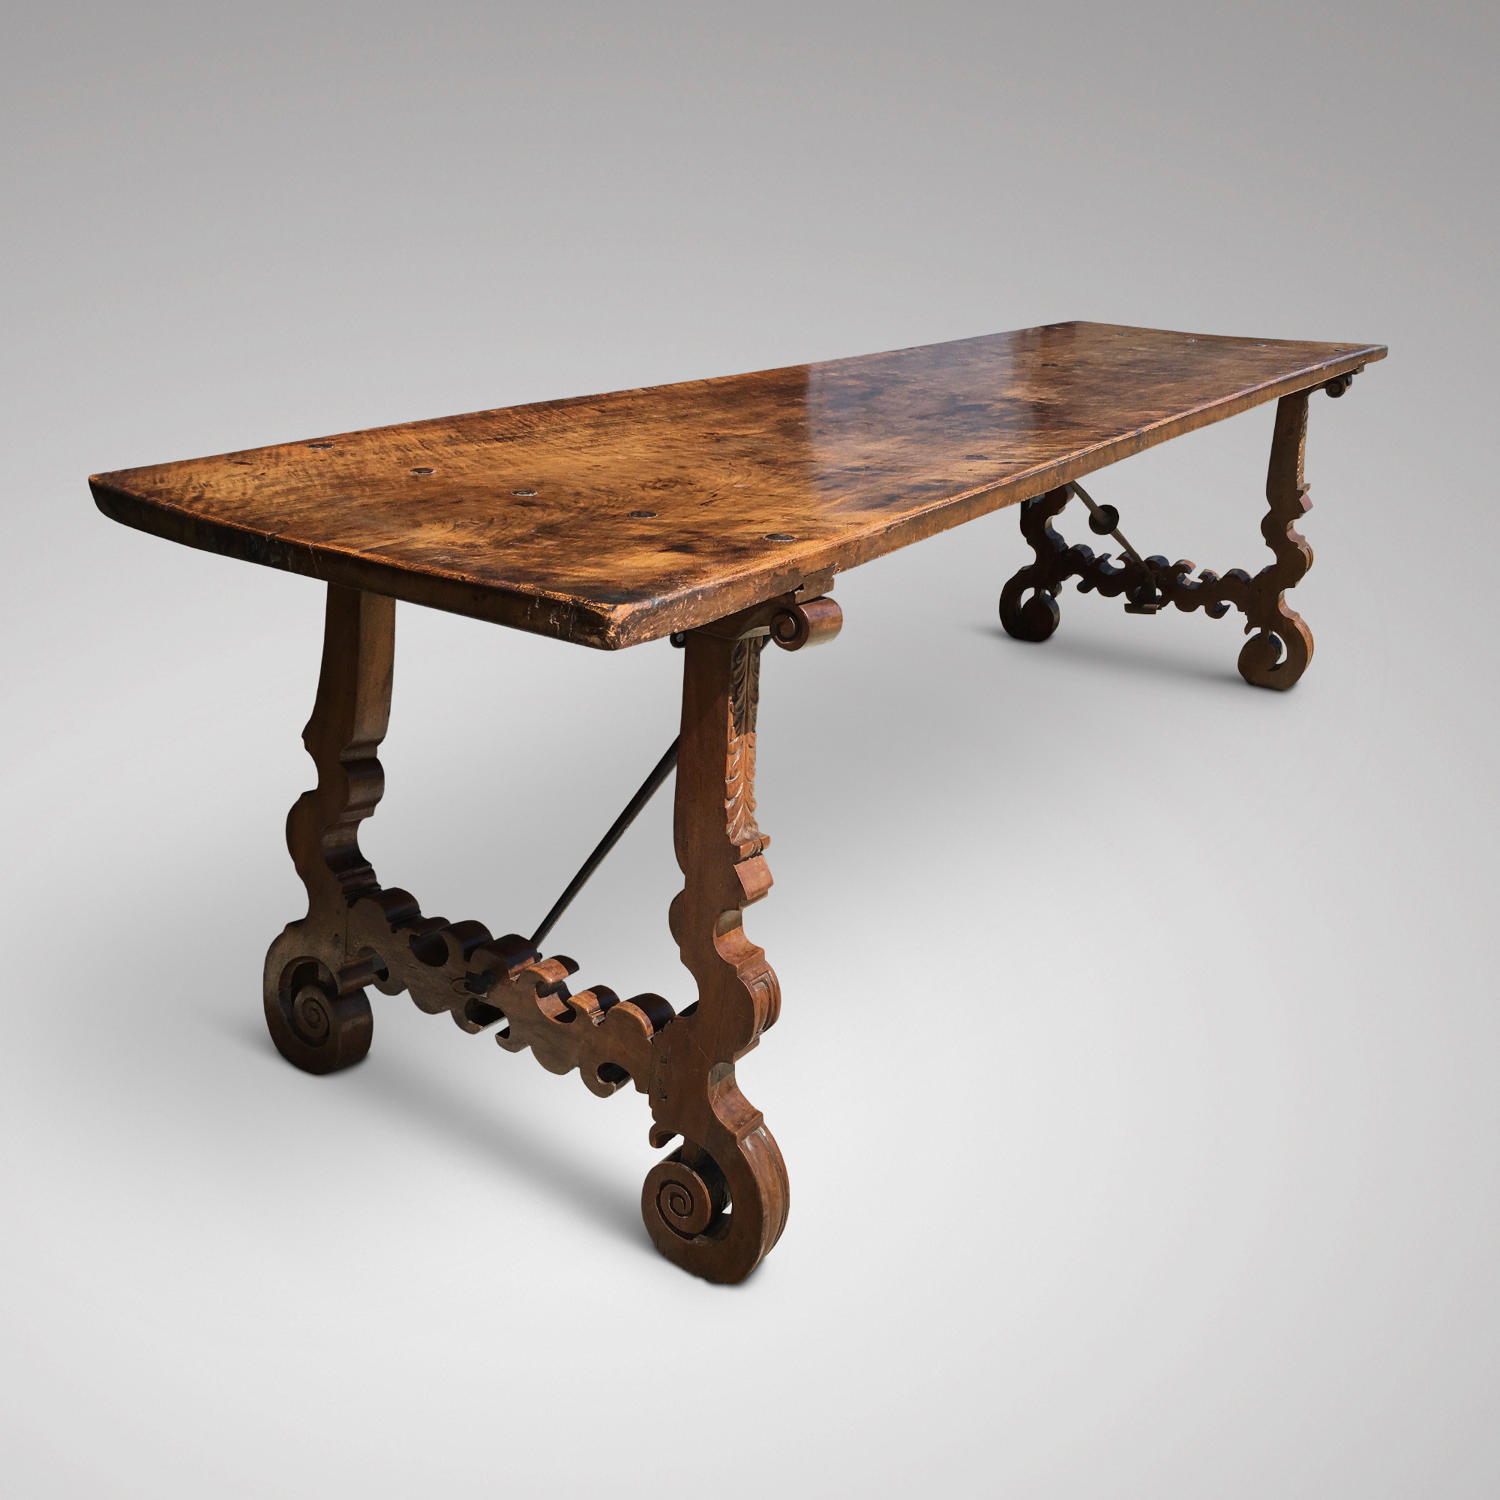 A 17TH CENTURY SPANISH TABLE